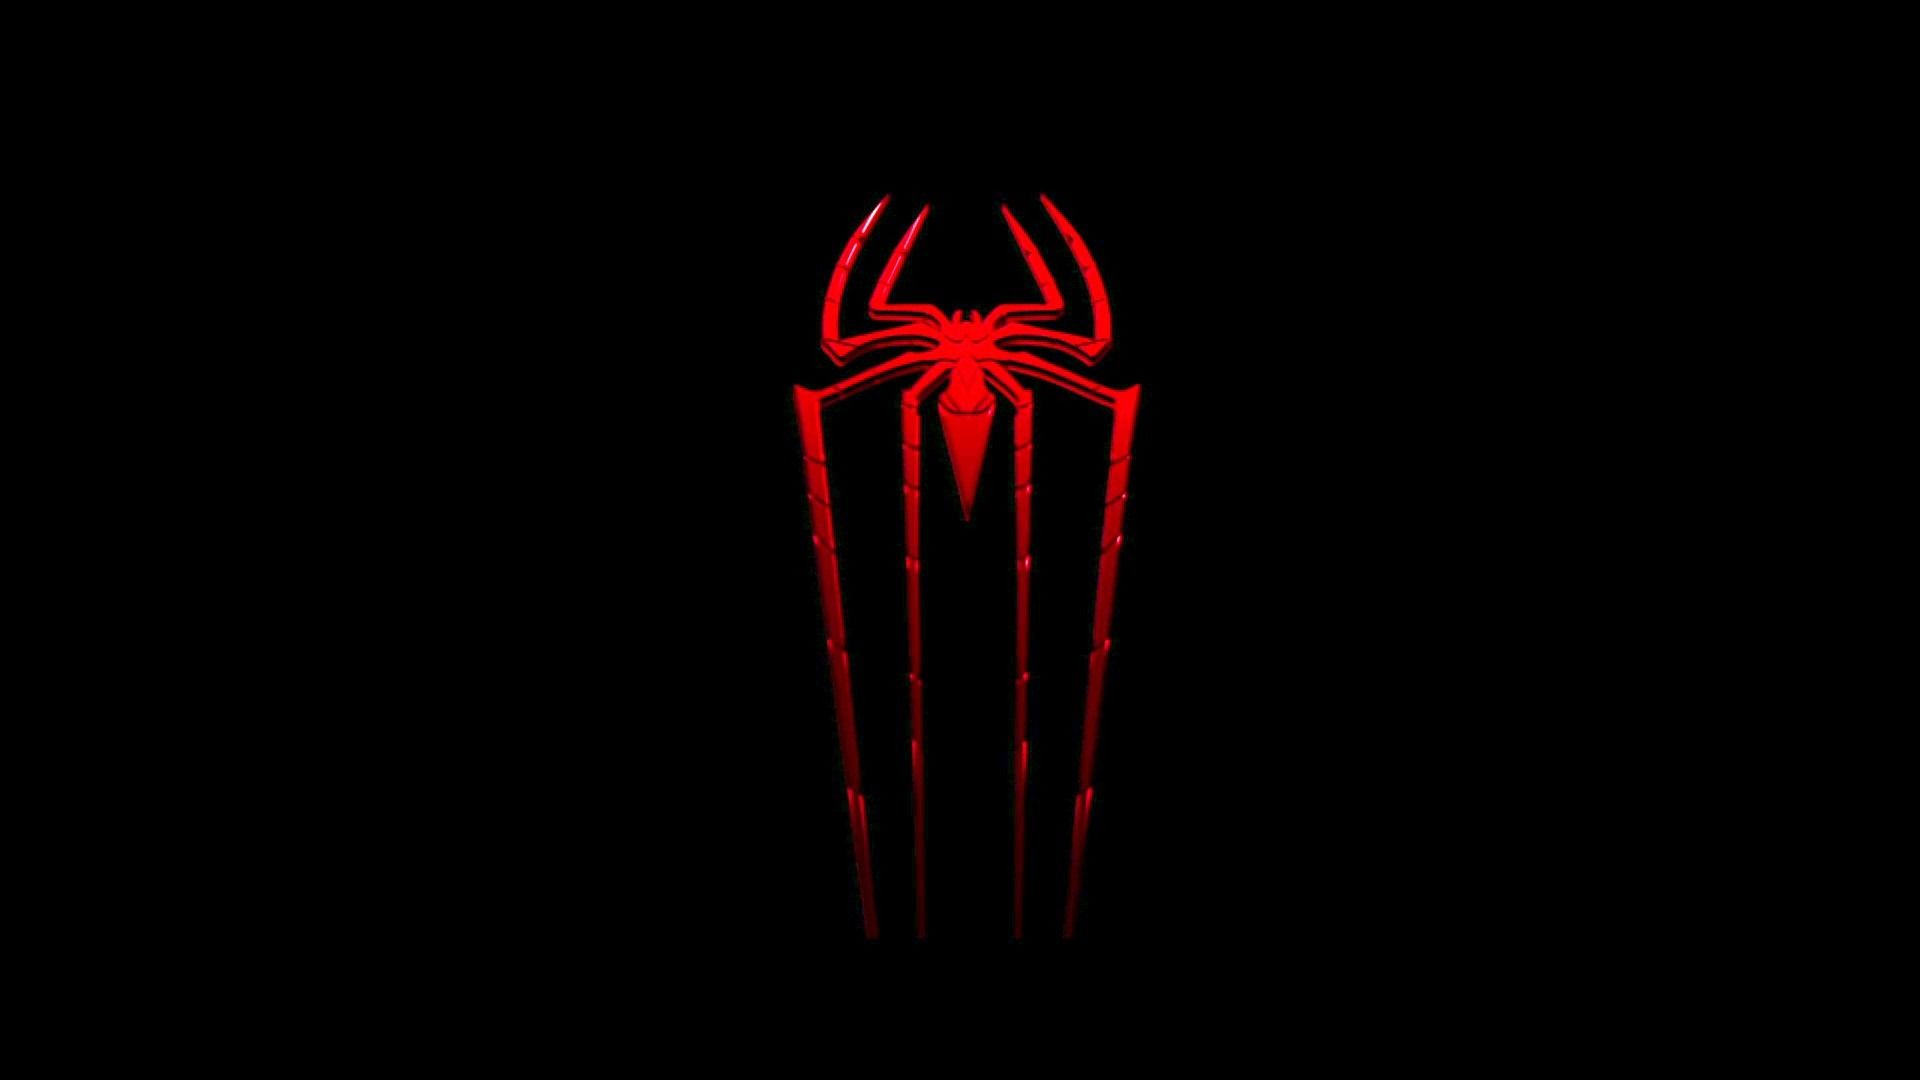 spiderman logo wallpaper hd resolution djv hd wallpaper